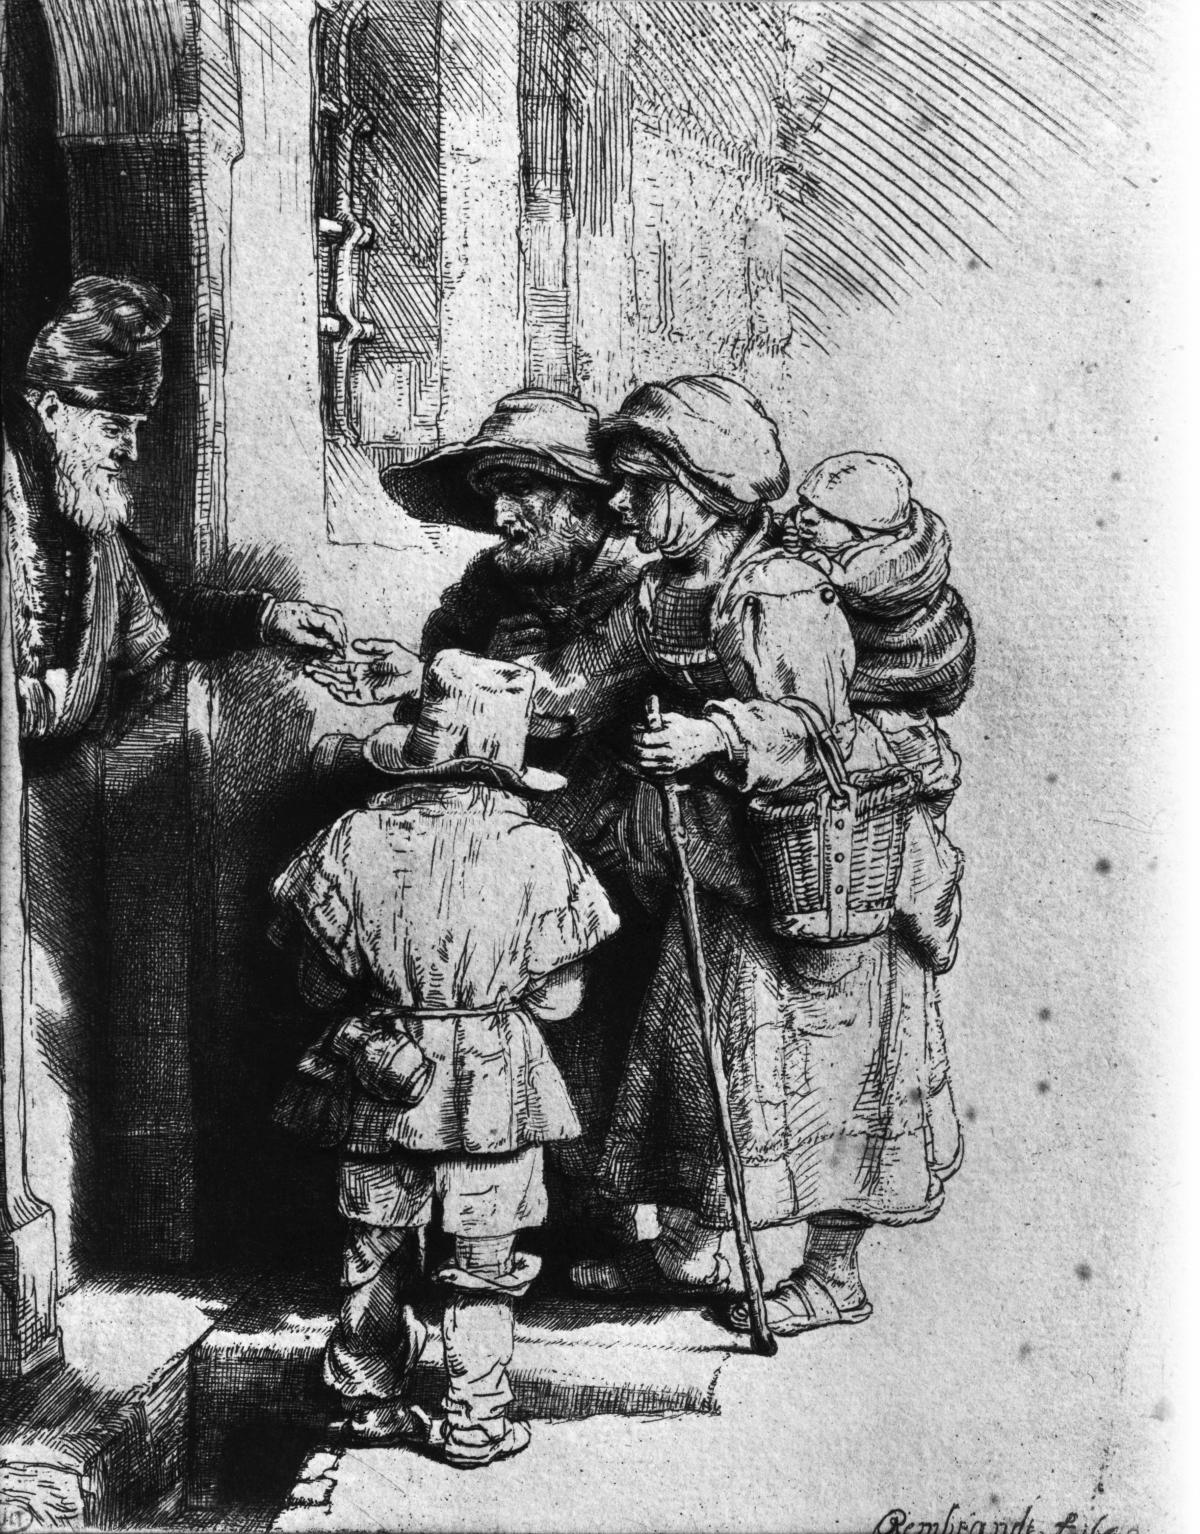 Black and white drawing of beggars outside the door of a house